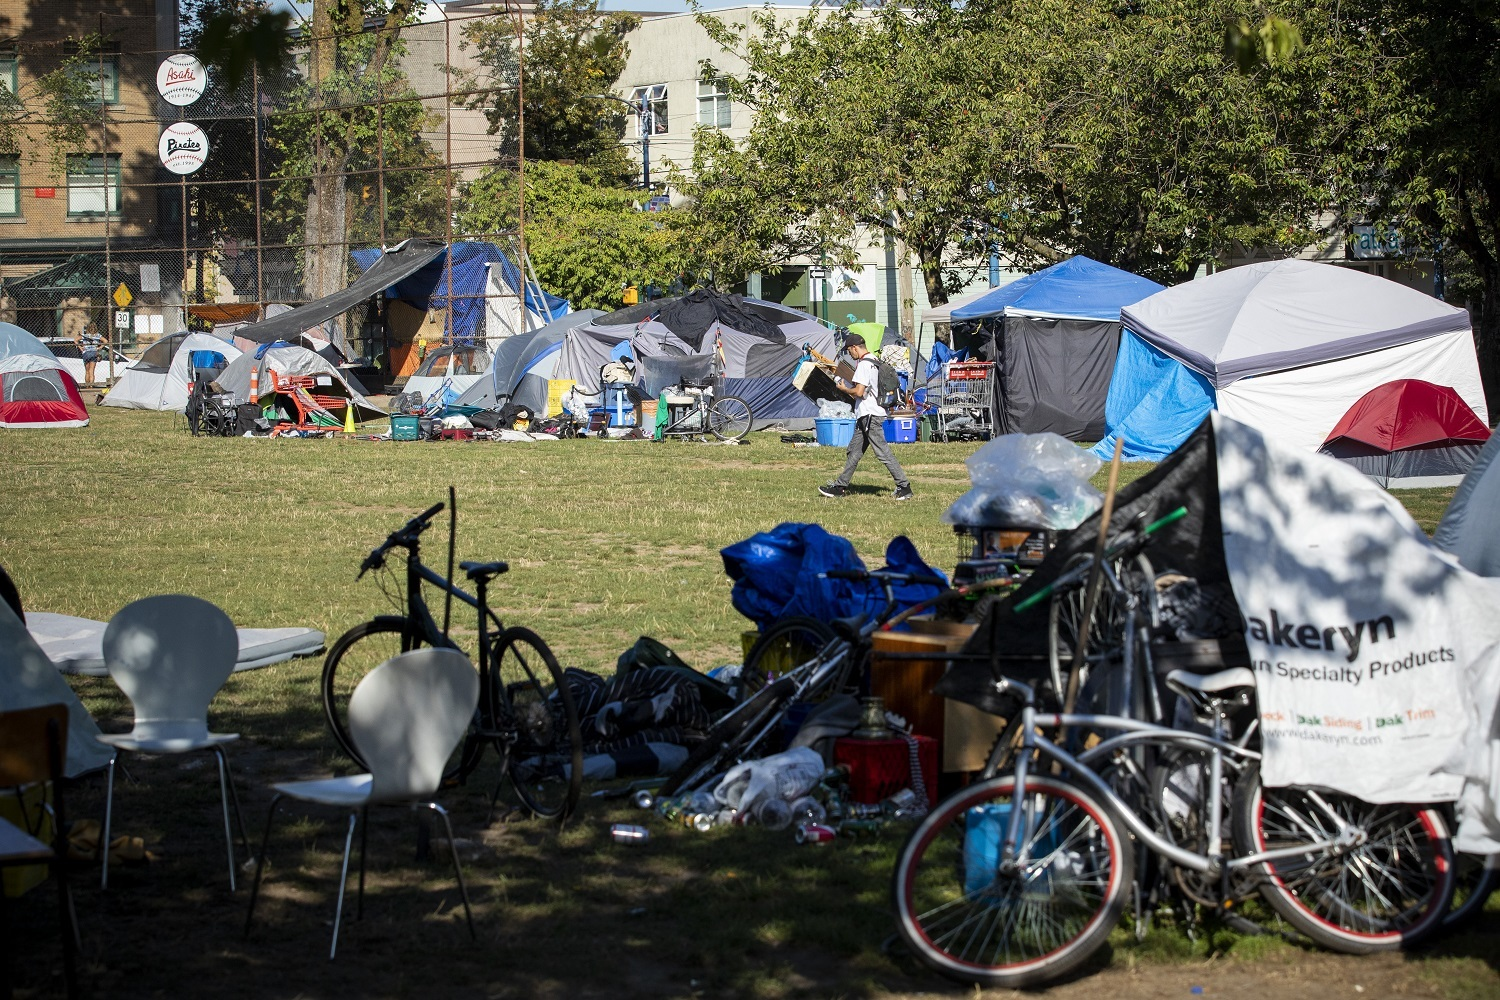 Oppenheimer Park in Vancouver, British Columbia on Friday, September 6, 2019. (Ben Nelms/CBC)